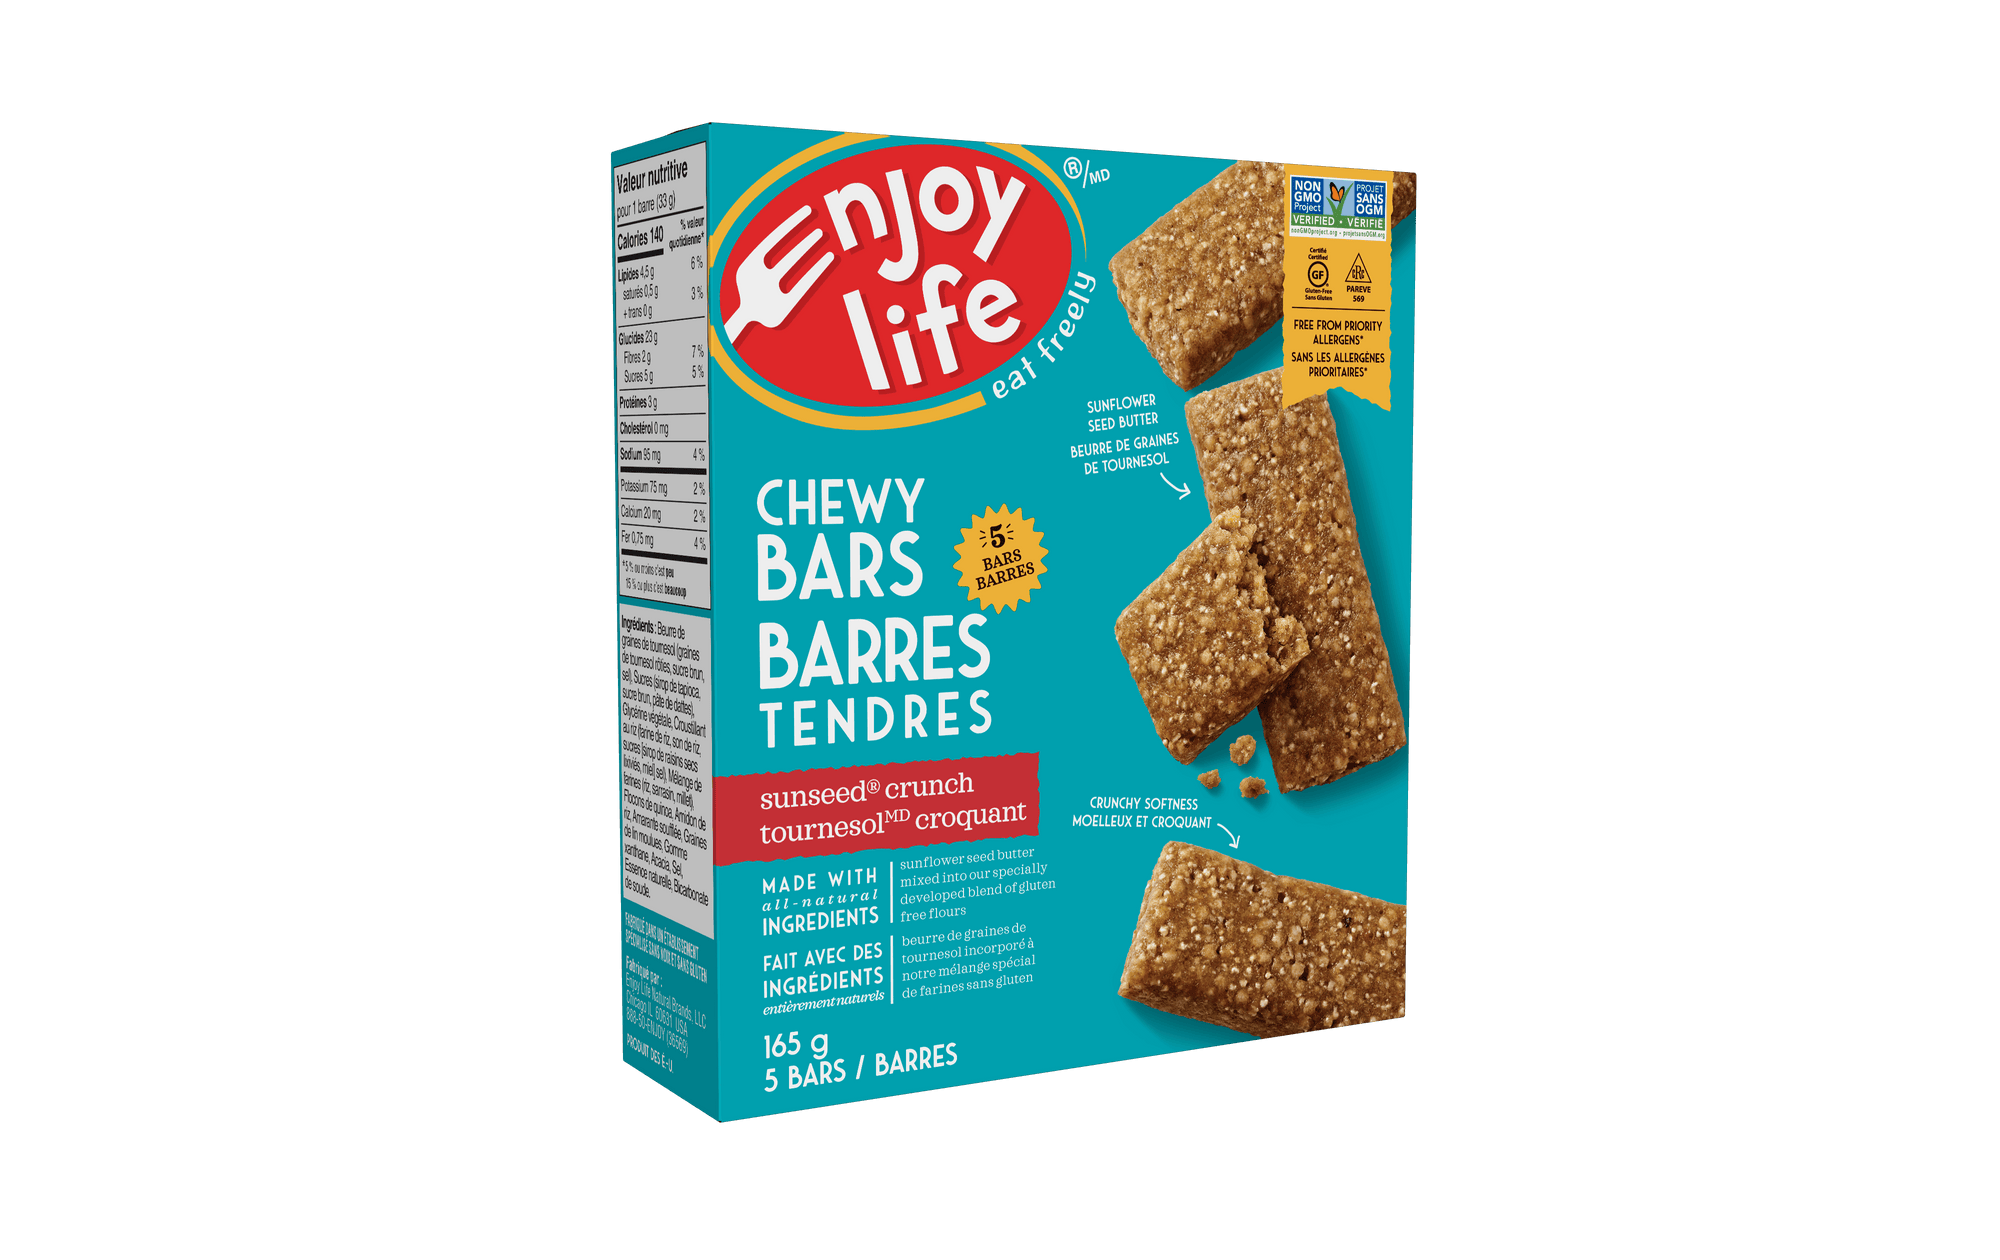 Food & Drink - Enjoy Life - Baked Chewy Bars - Sunseed Crunch, 165g